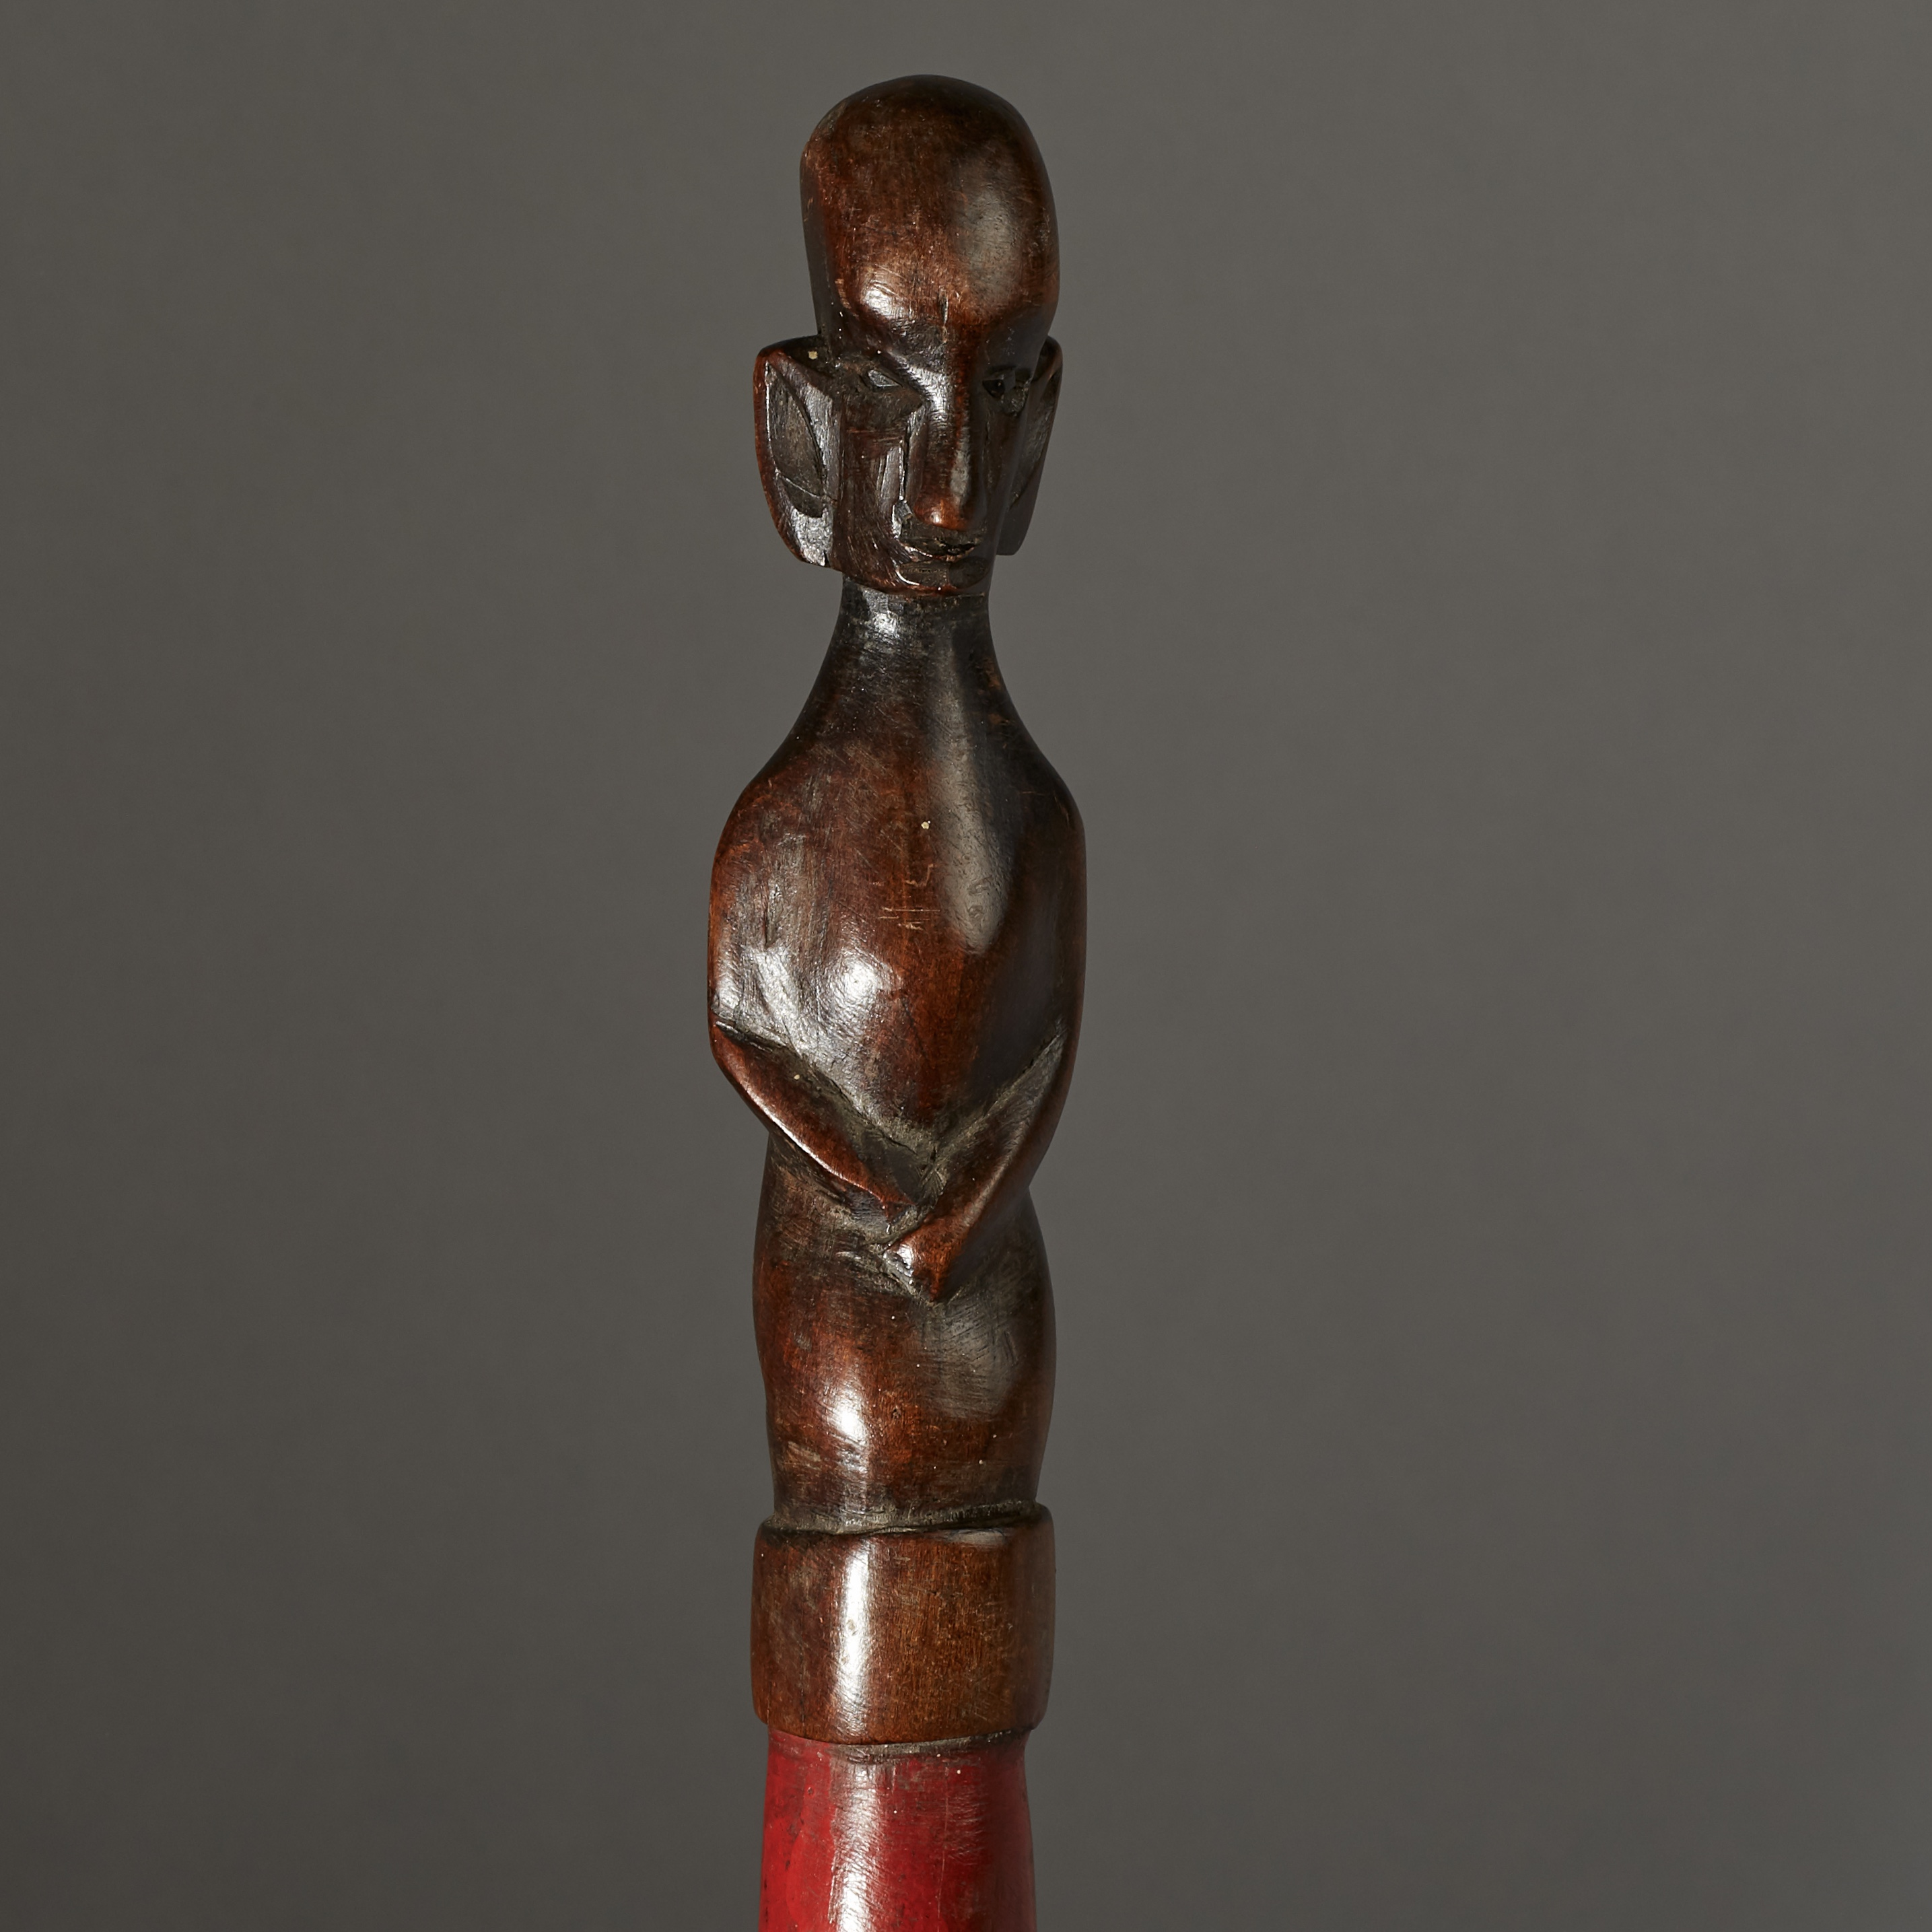 SD A PRESTIGE STAFF FROM NYAMWESI TRIBE OF TANZANIA ( No 2869 )